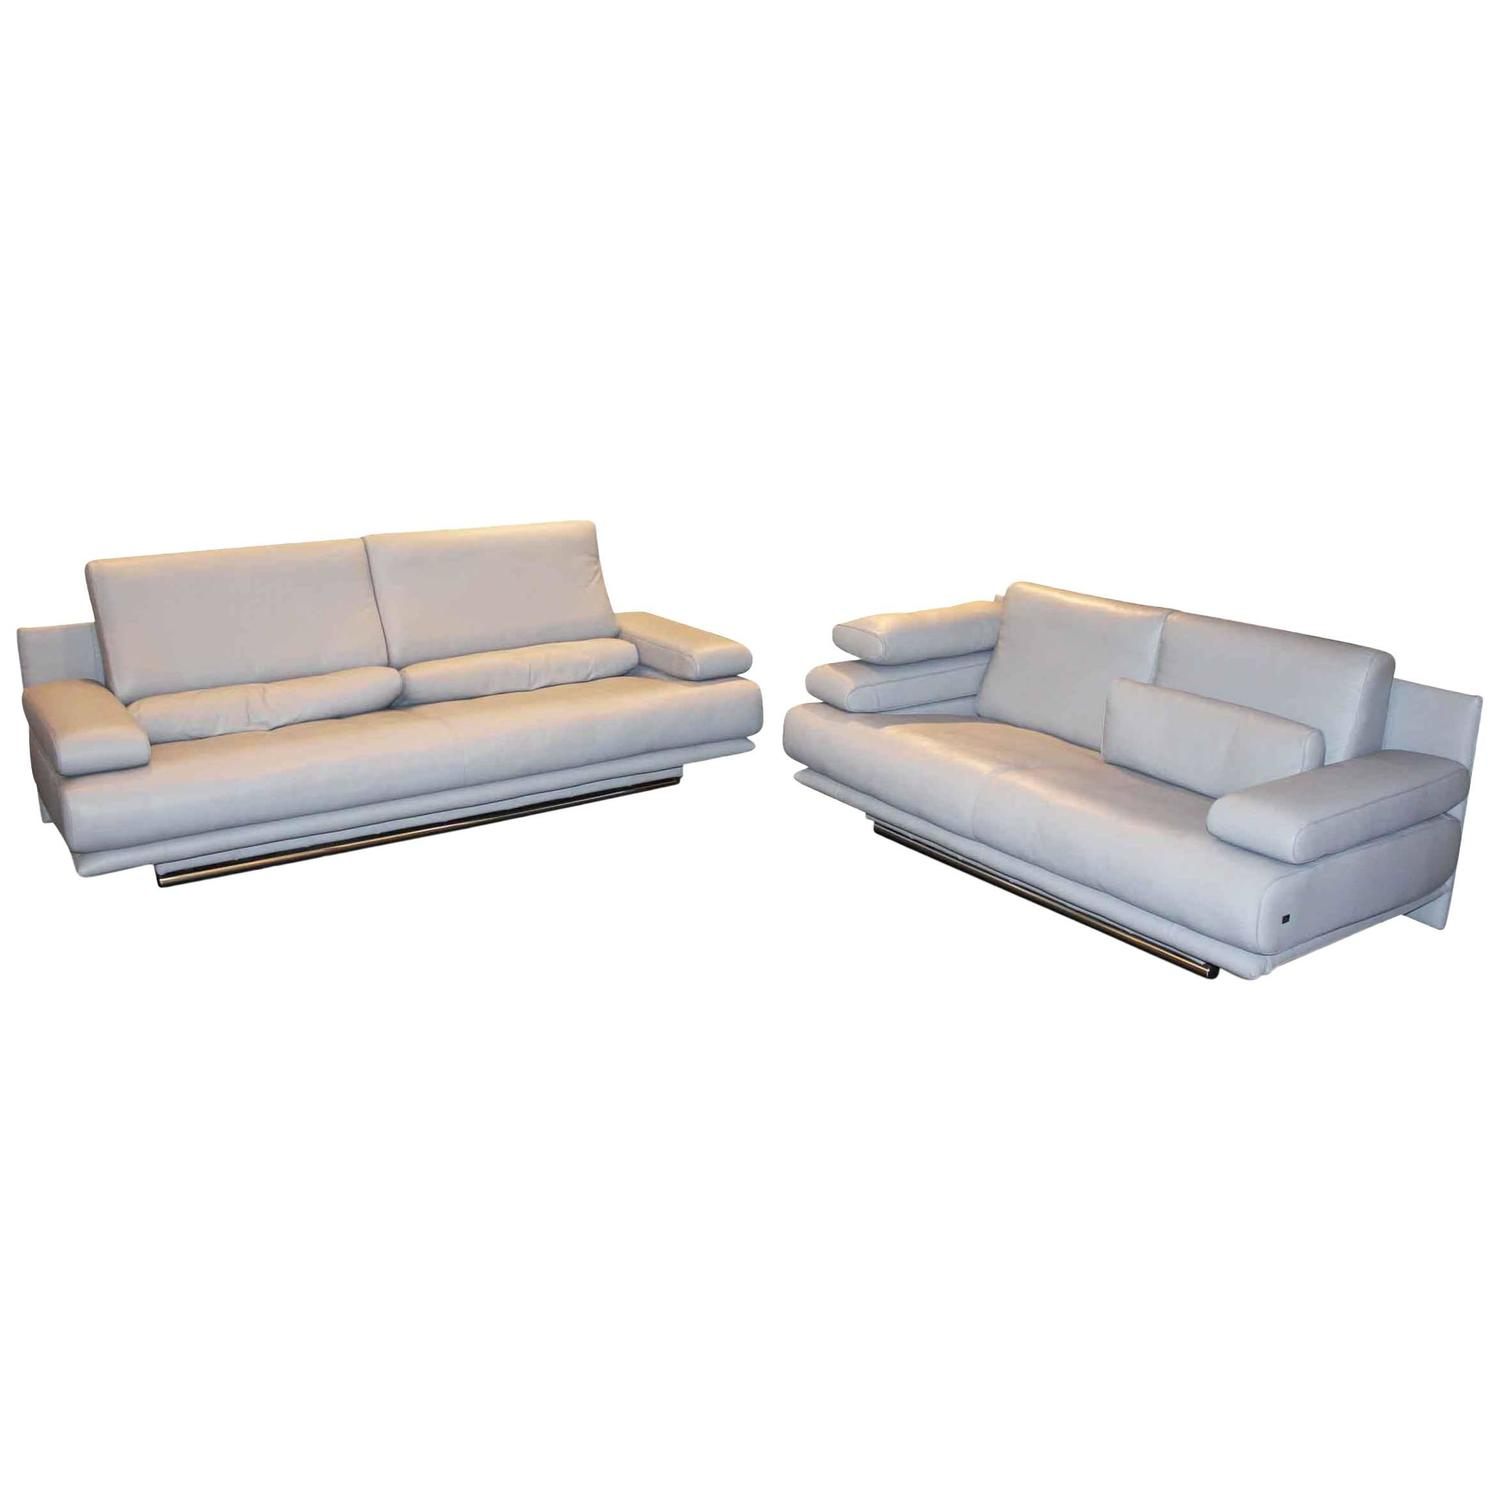 seats and sofas bochum love seats and sofas for rent in. Black Bedroom Furniture Sets. Home Design Ideas